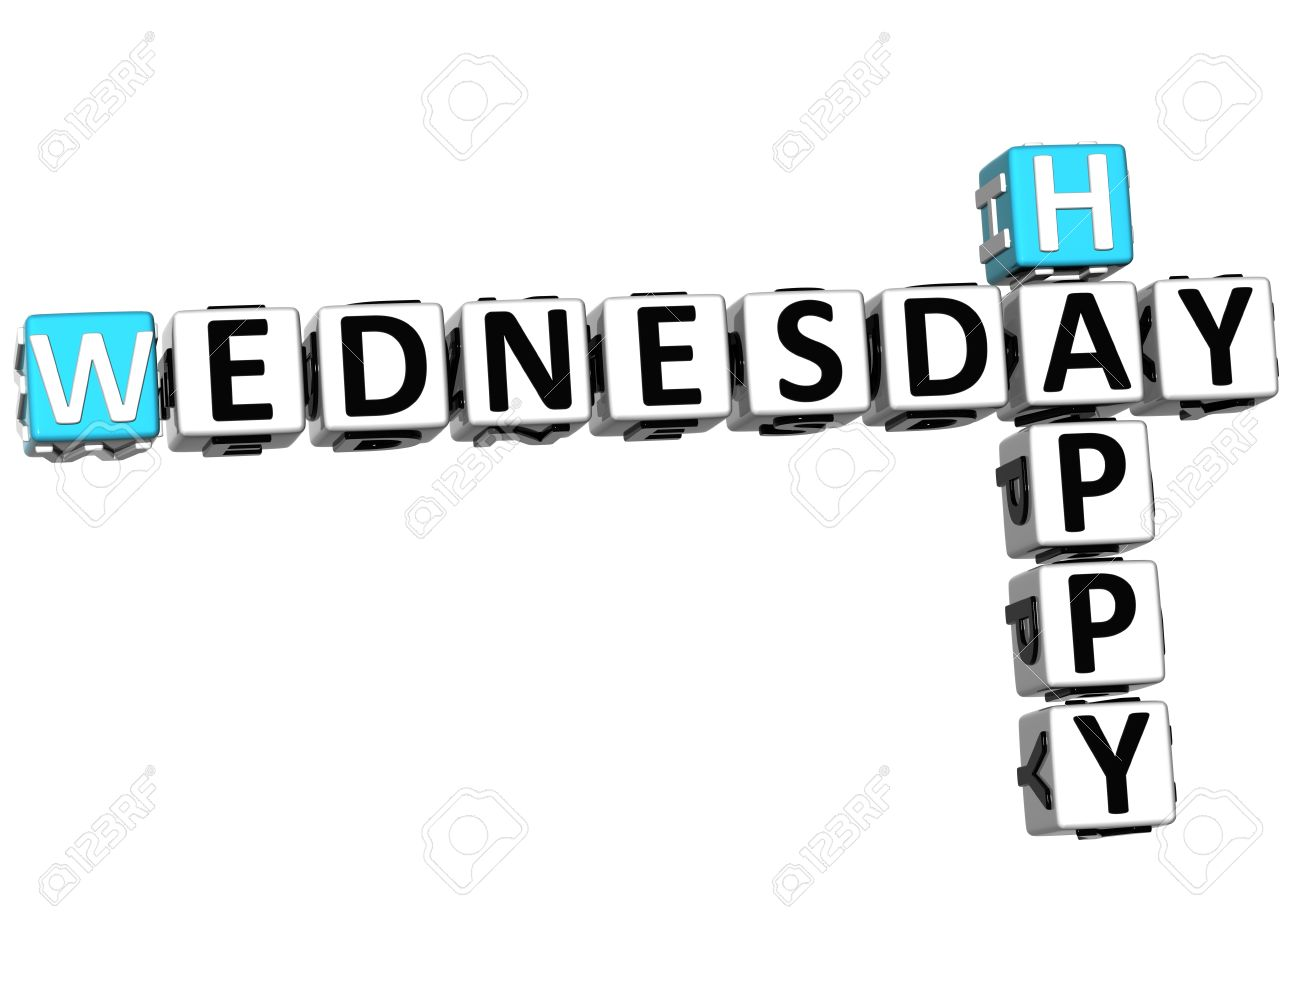 Clip Art Happy Wednesday Clipart 315 happy wednesday stock vector illustration and royalty free 3d crossword on white background